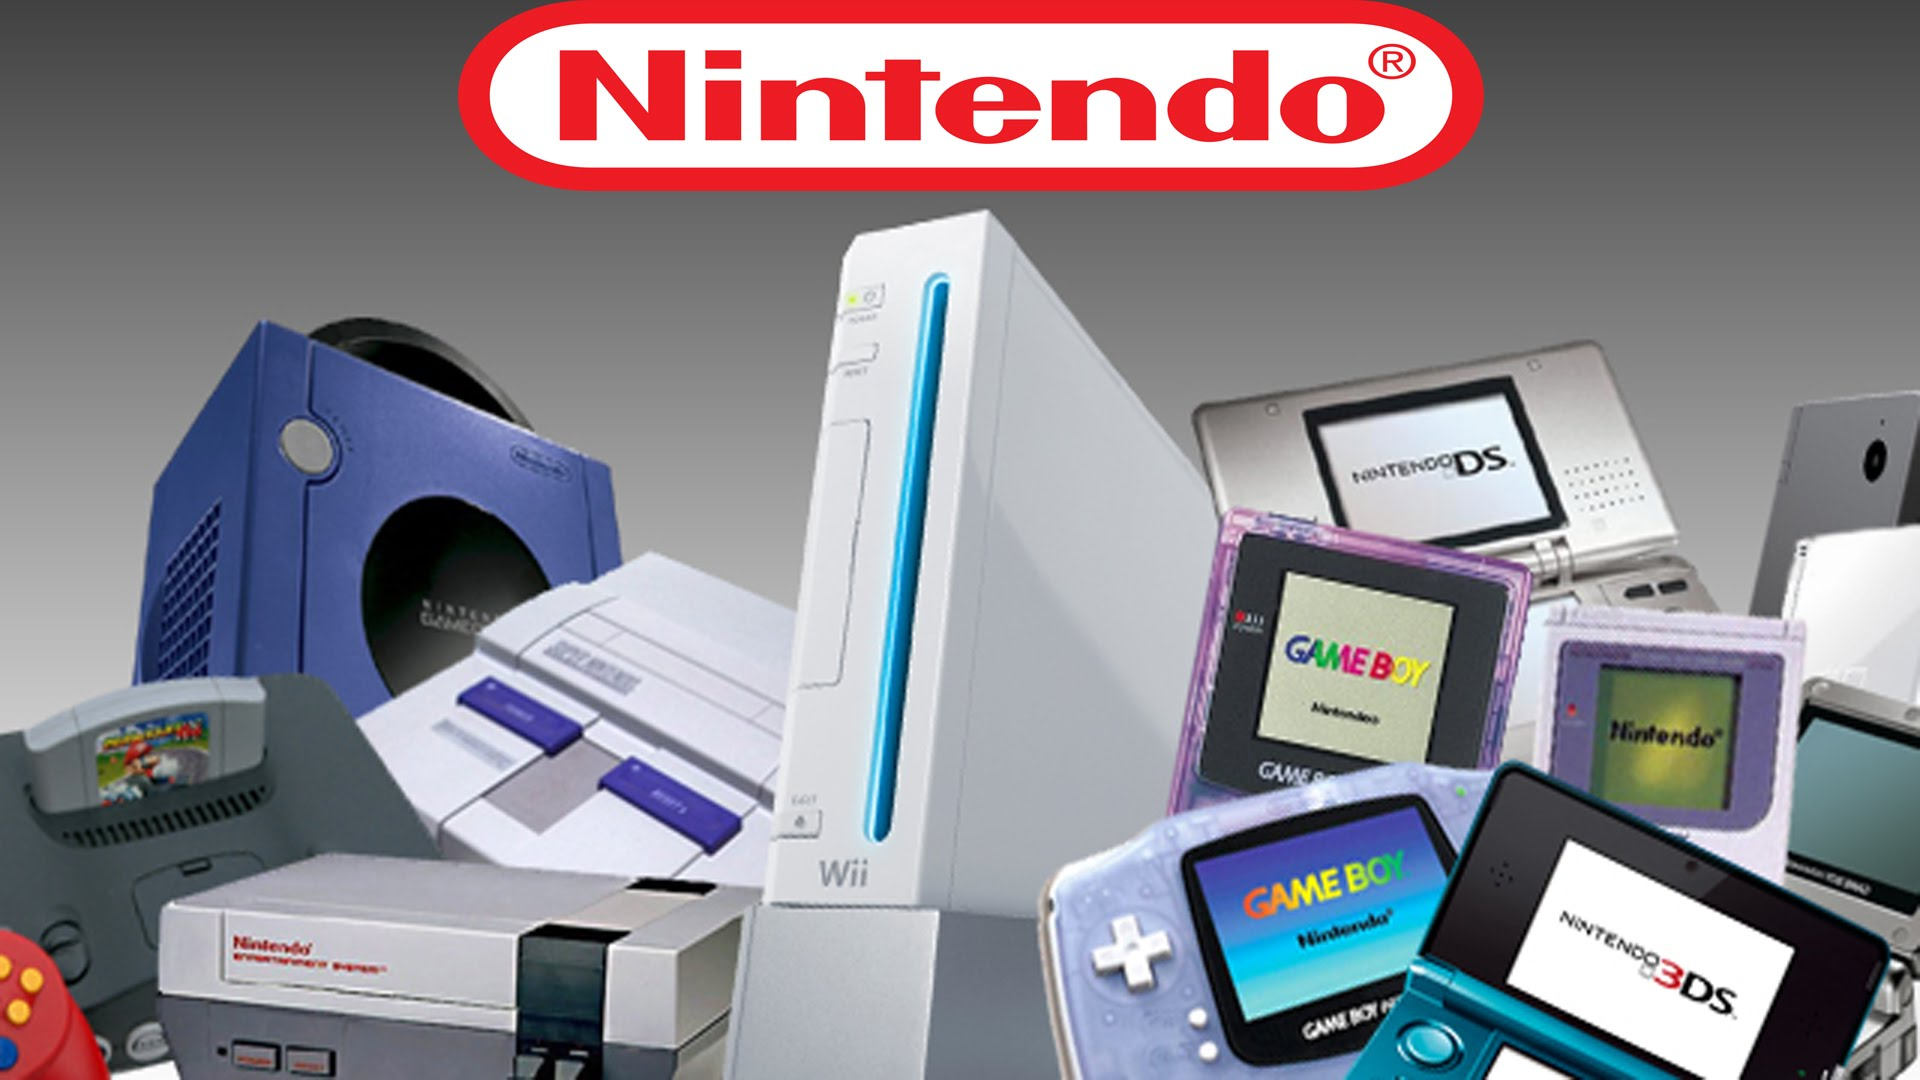 . 15 Shocking Mistakes Nintendo Made Throughout The Years